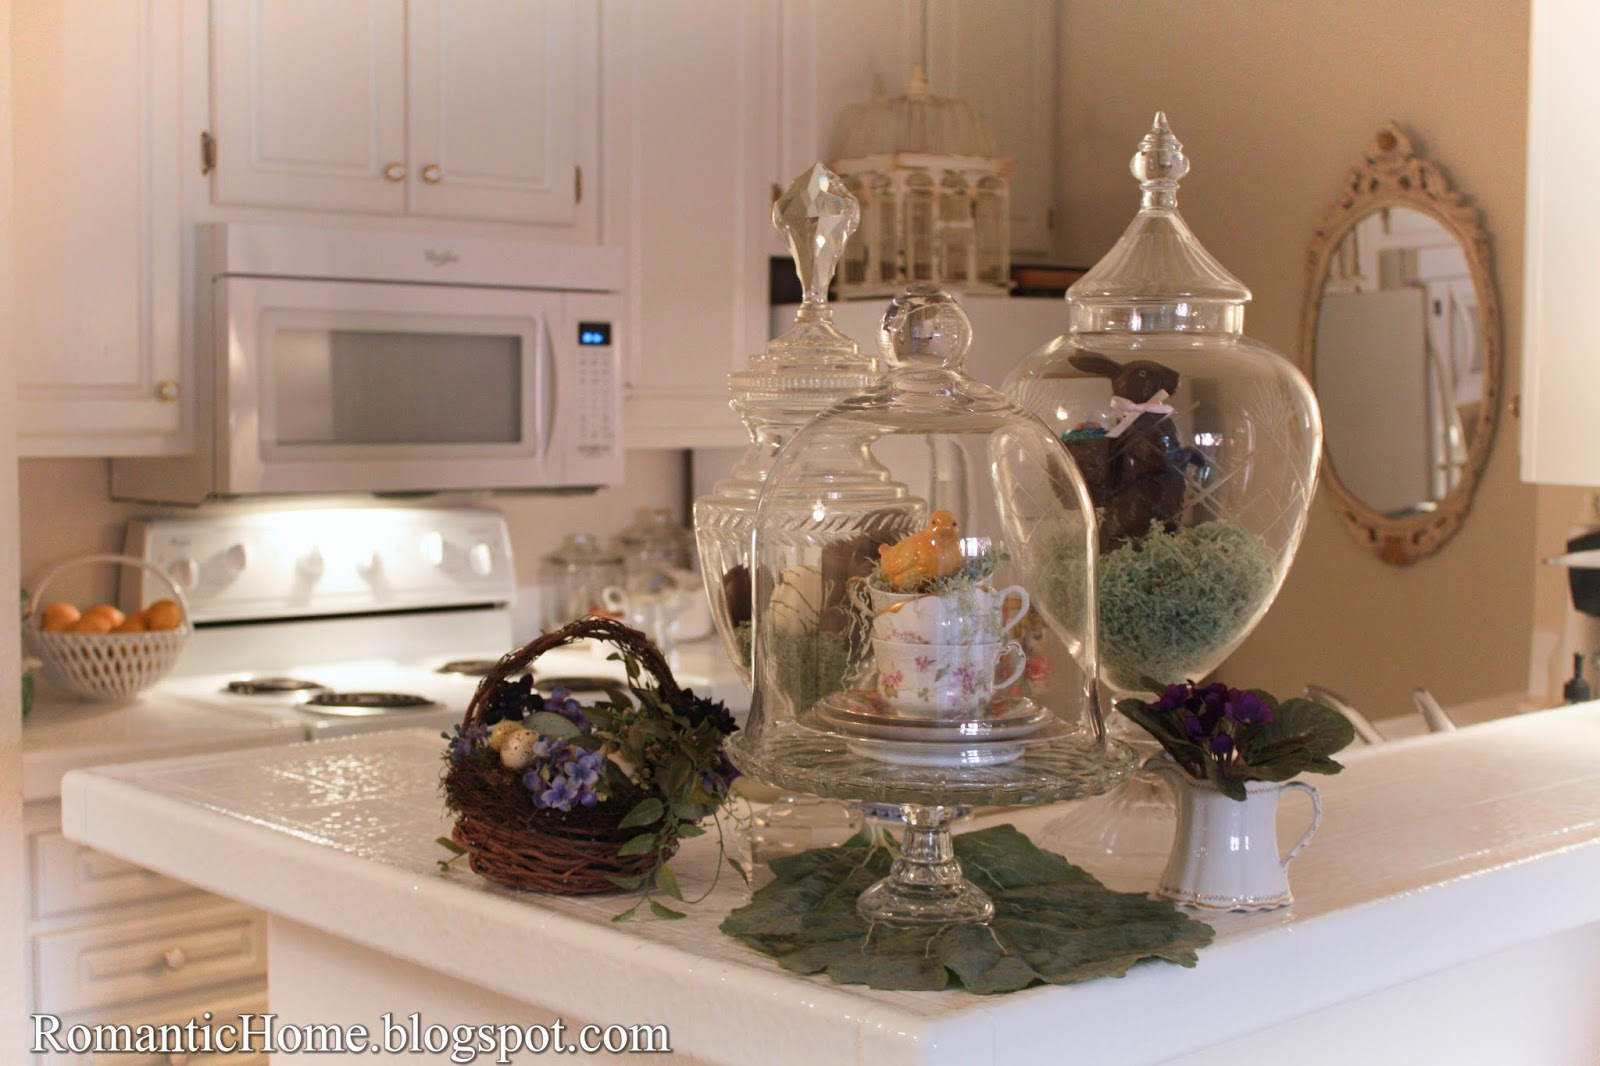 My Romantic Home A Little Kitchen Easter Decor Show And